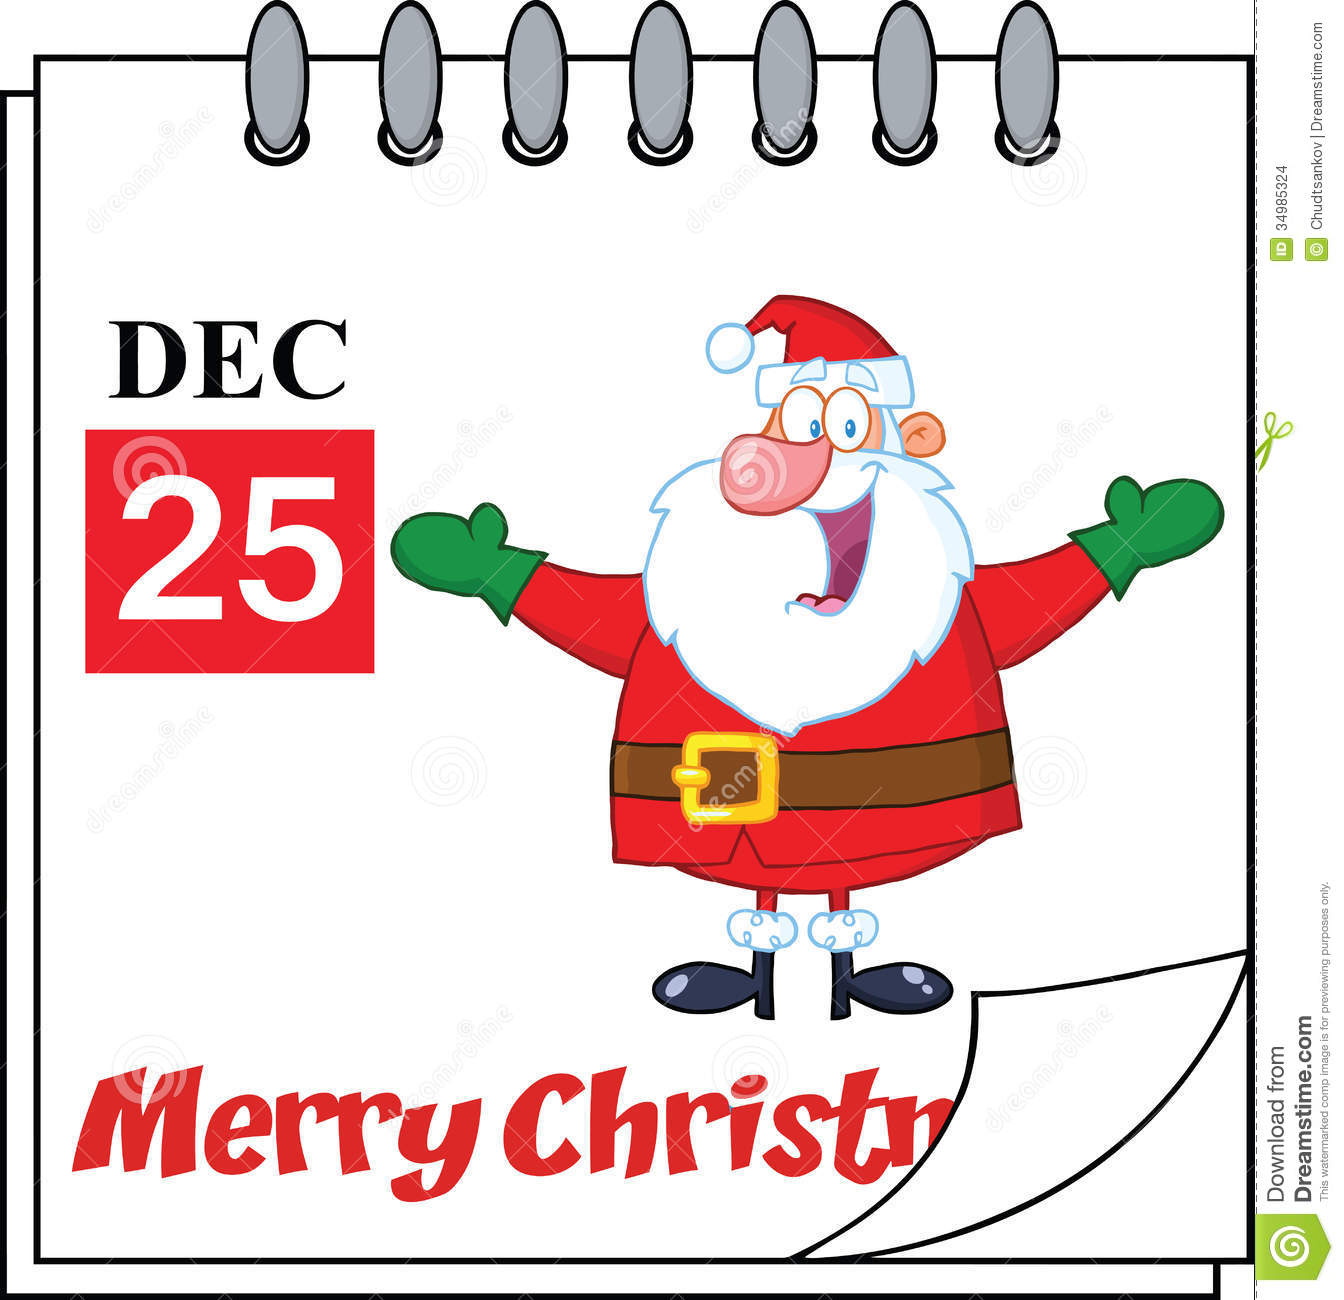 Christmas Calendar Pictures : Christmas holiday calendar with jolly santa claus